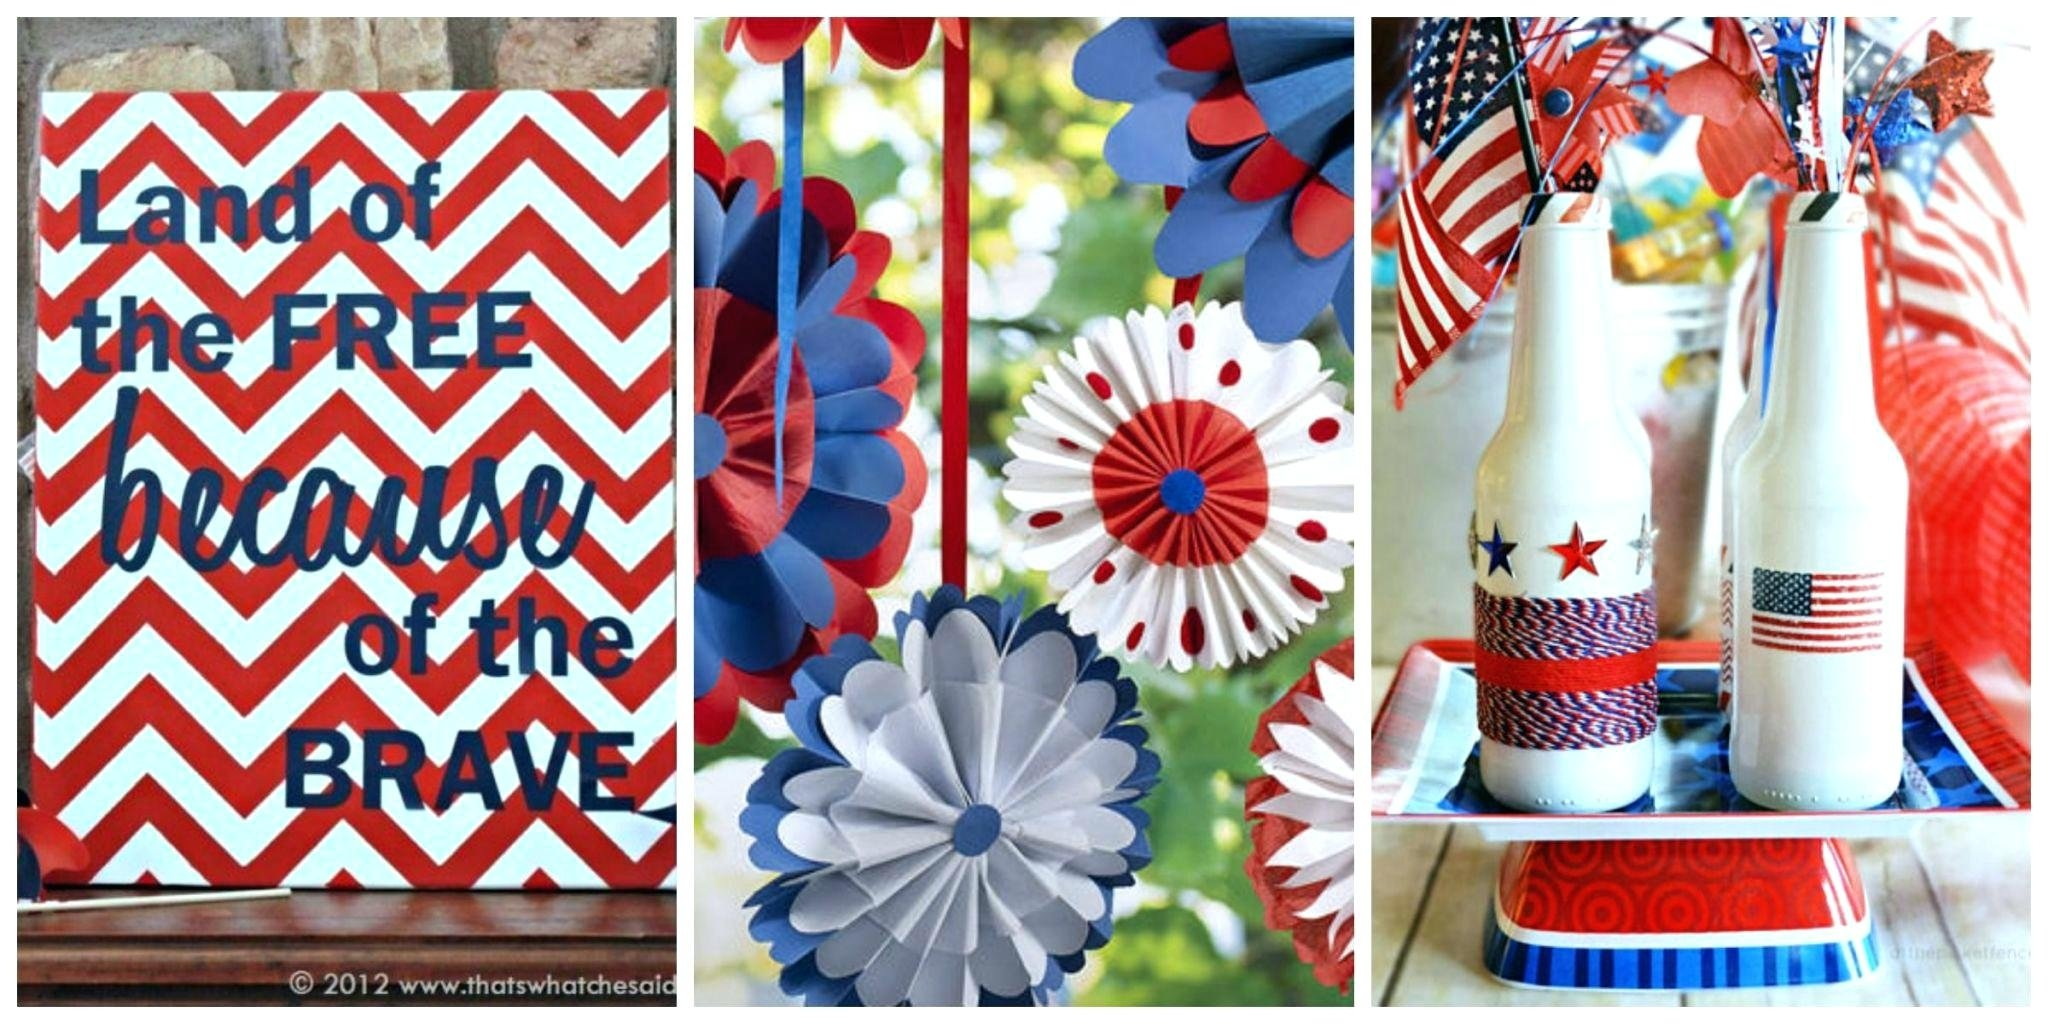 10 Lovely Fourth Of July Decoration Ideas fourth of july decorations of star streamer easy diy fourth of july 2021